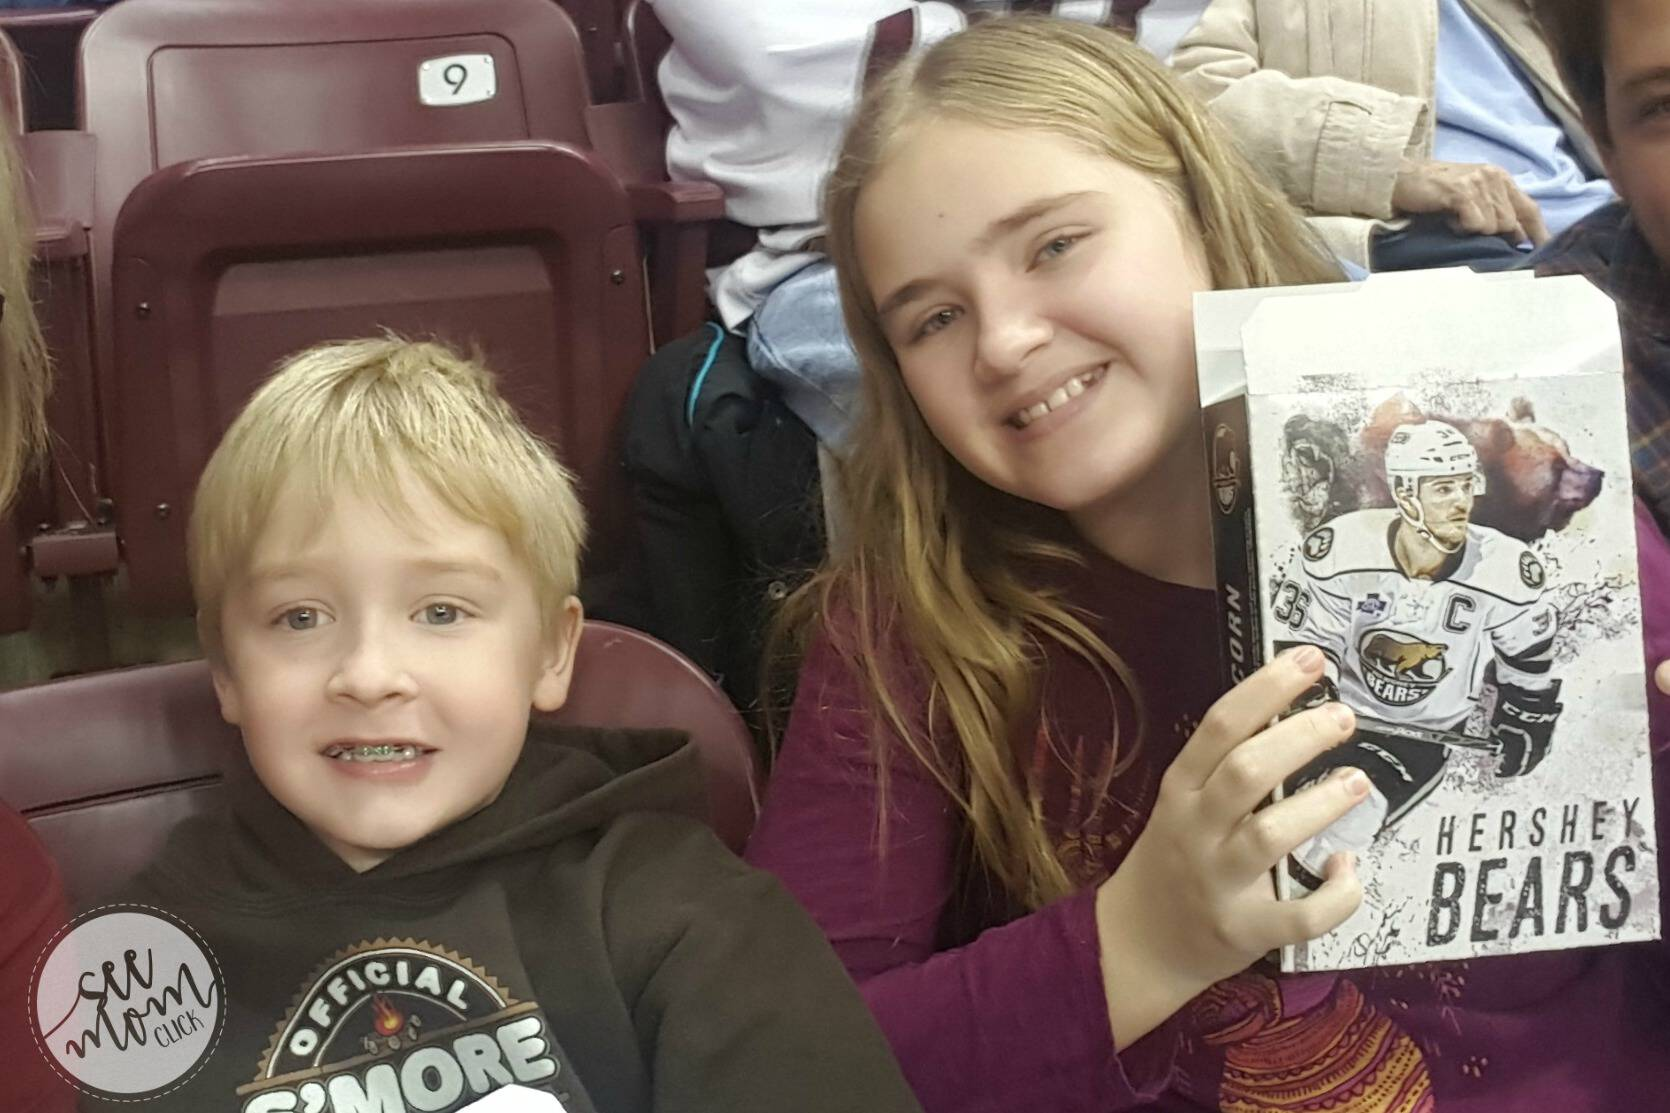 Take your family game night to a whole'nother level this winter with the Hershey Bears Family 4-pack deal. Tickets, food, and more at one discounted price!